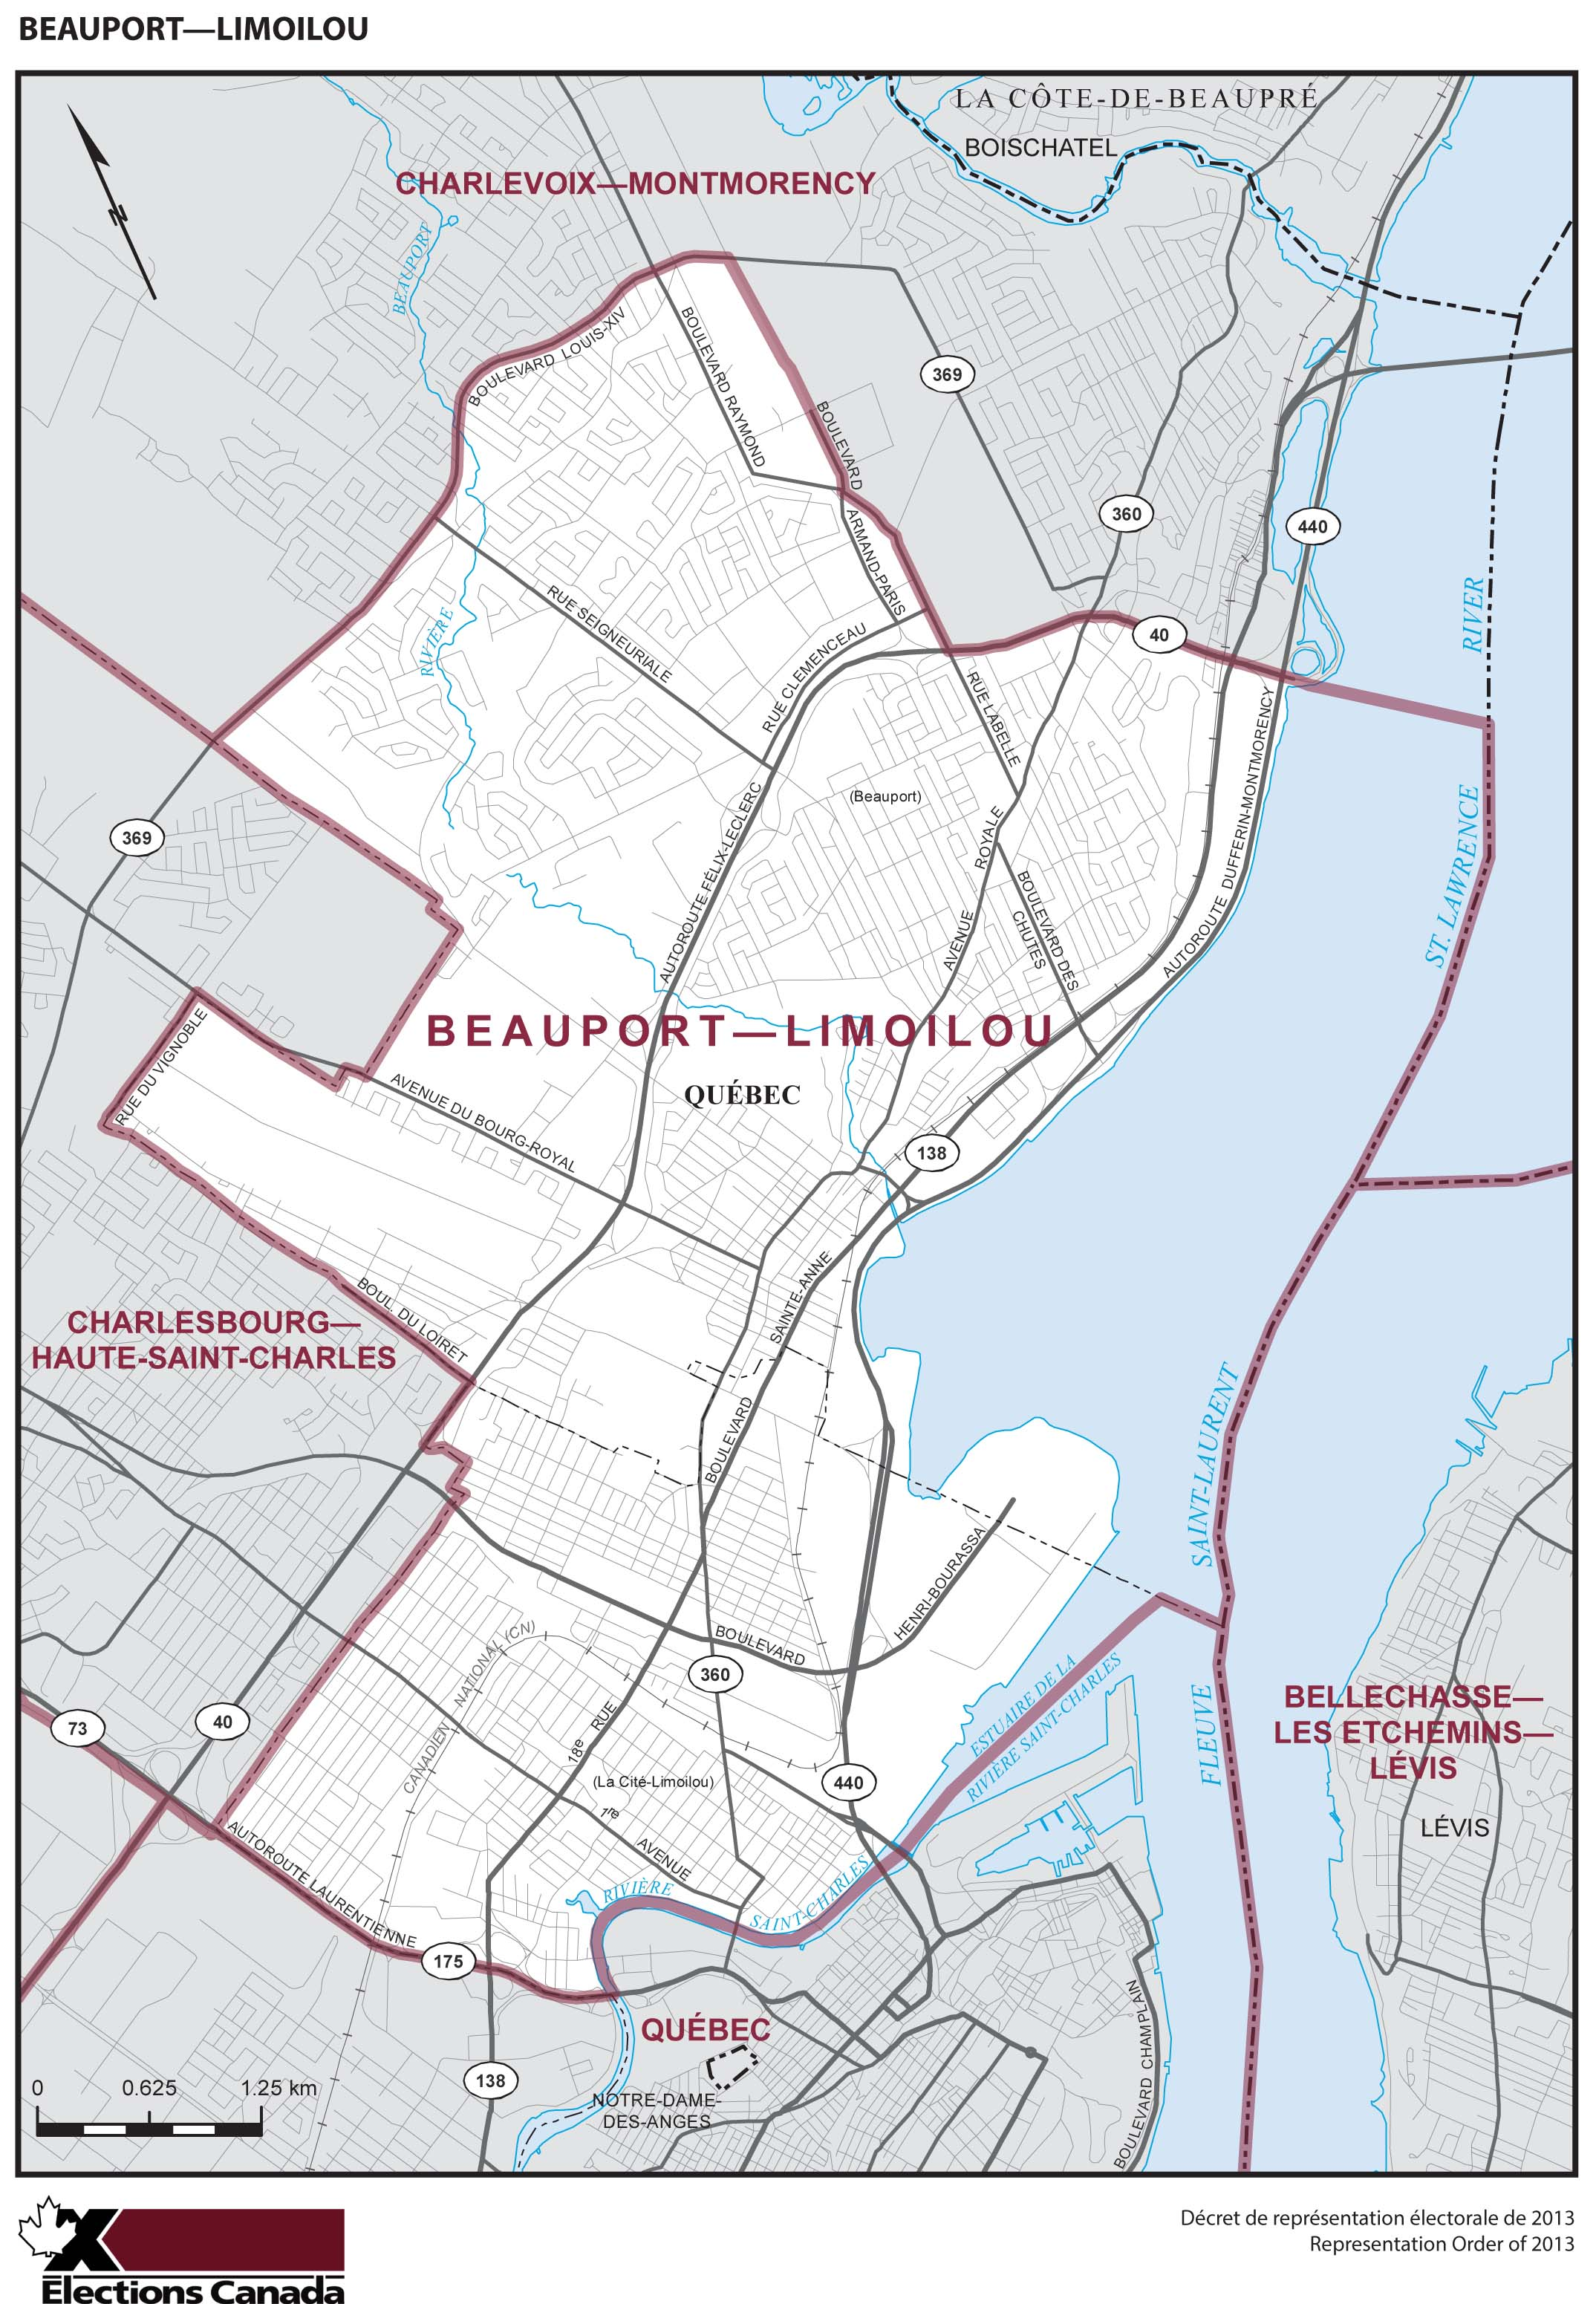 Map: Beauport--Limoilou, Federal electoral district, 2013 Representation Order (in white), Quebec